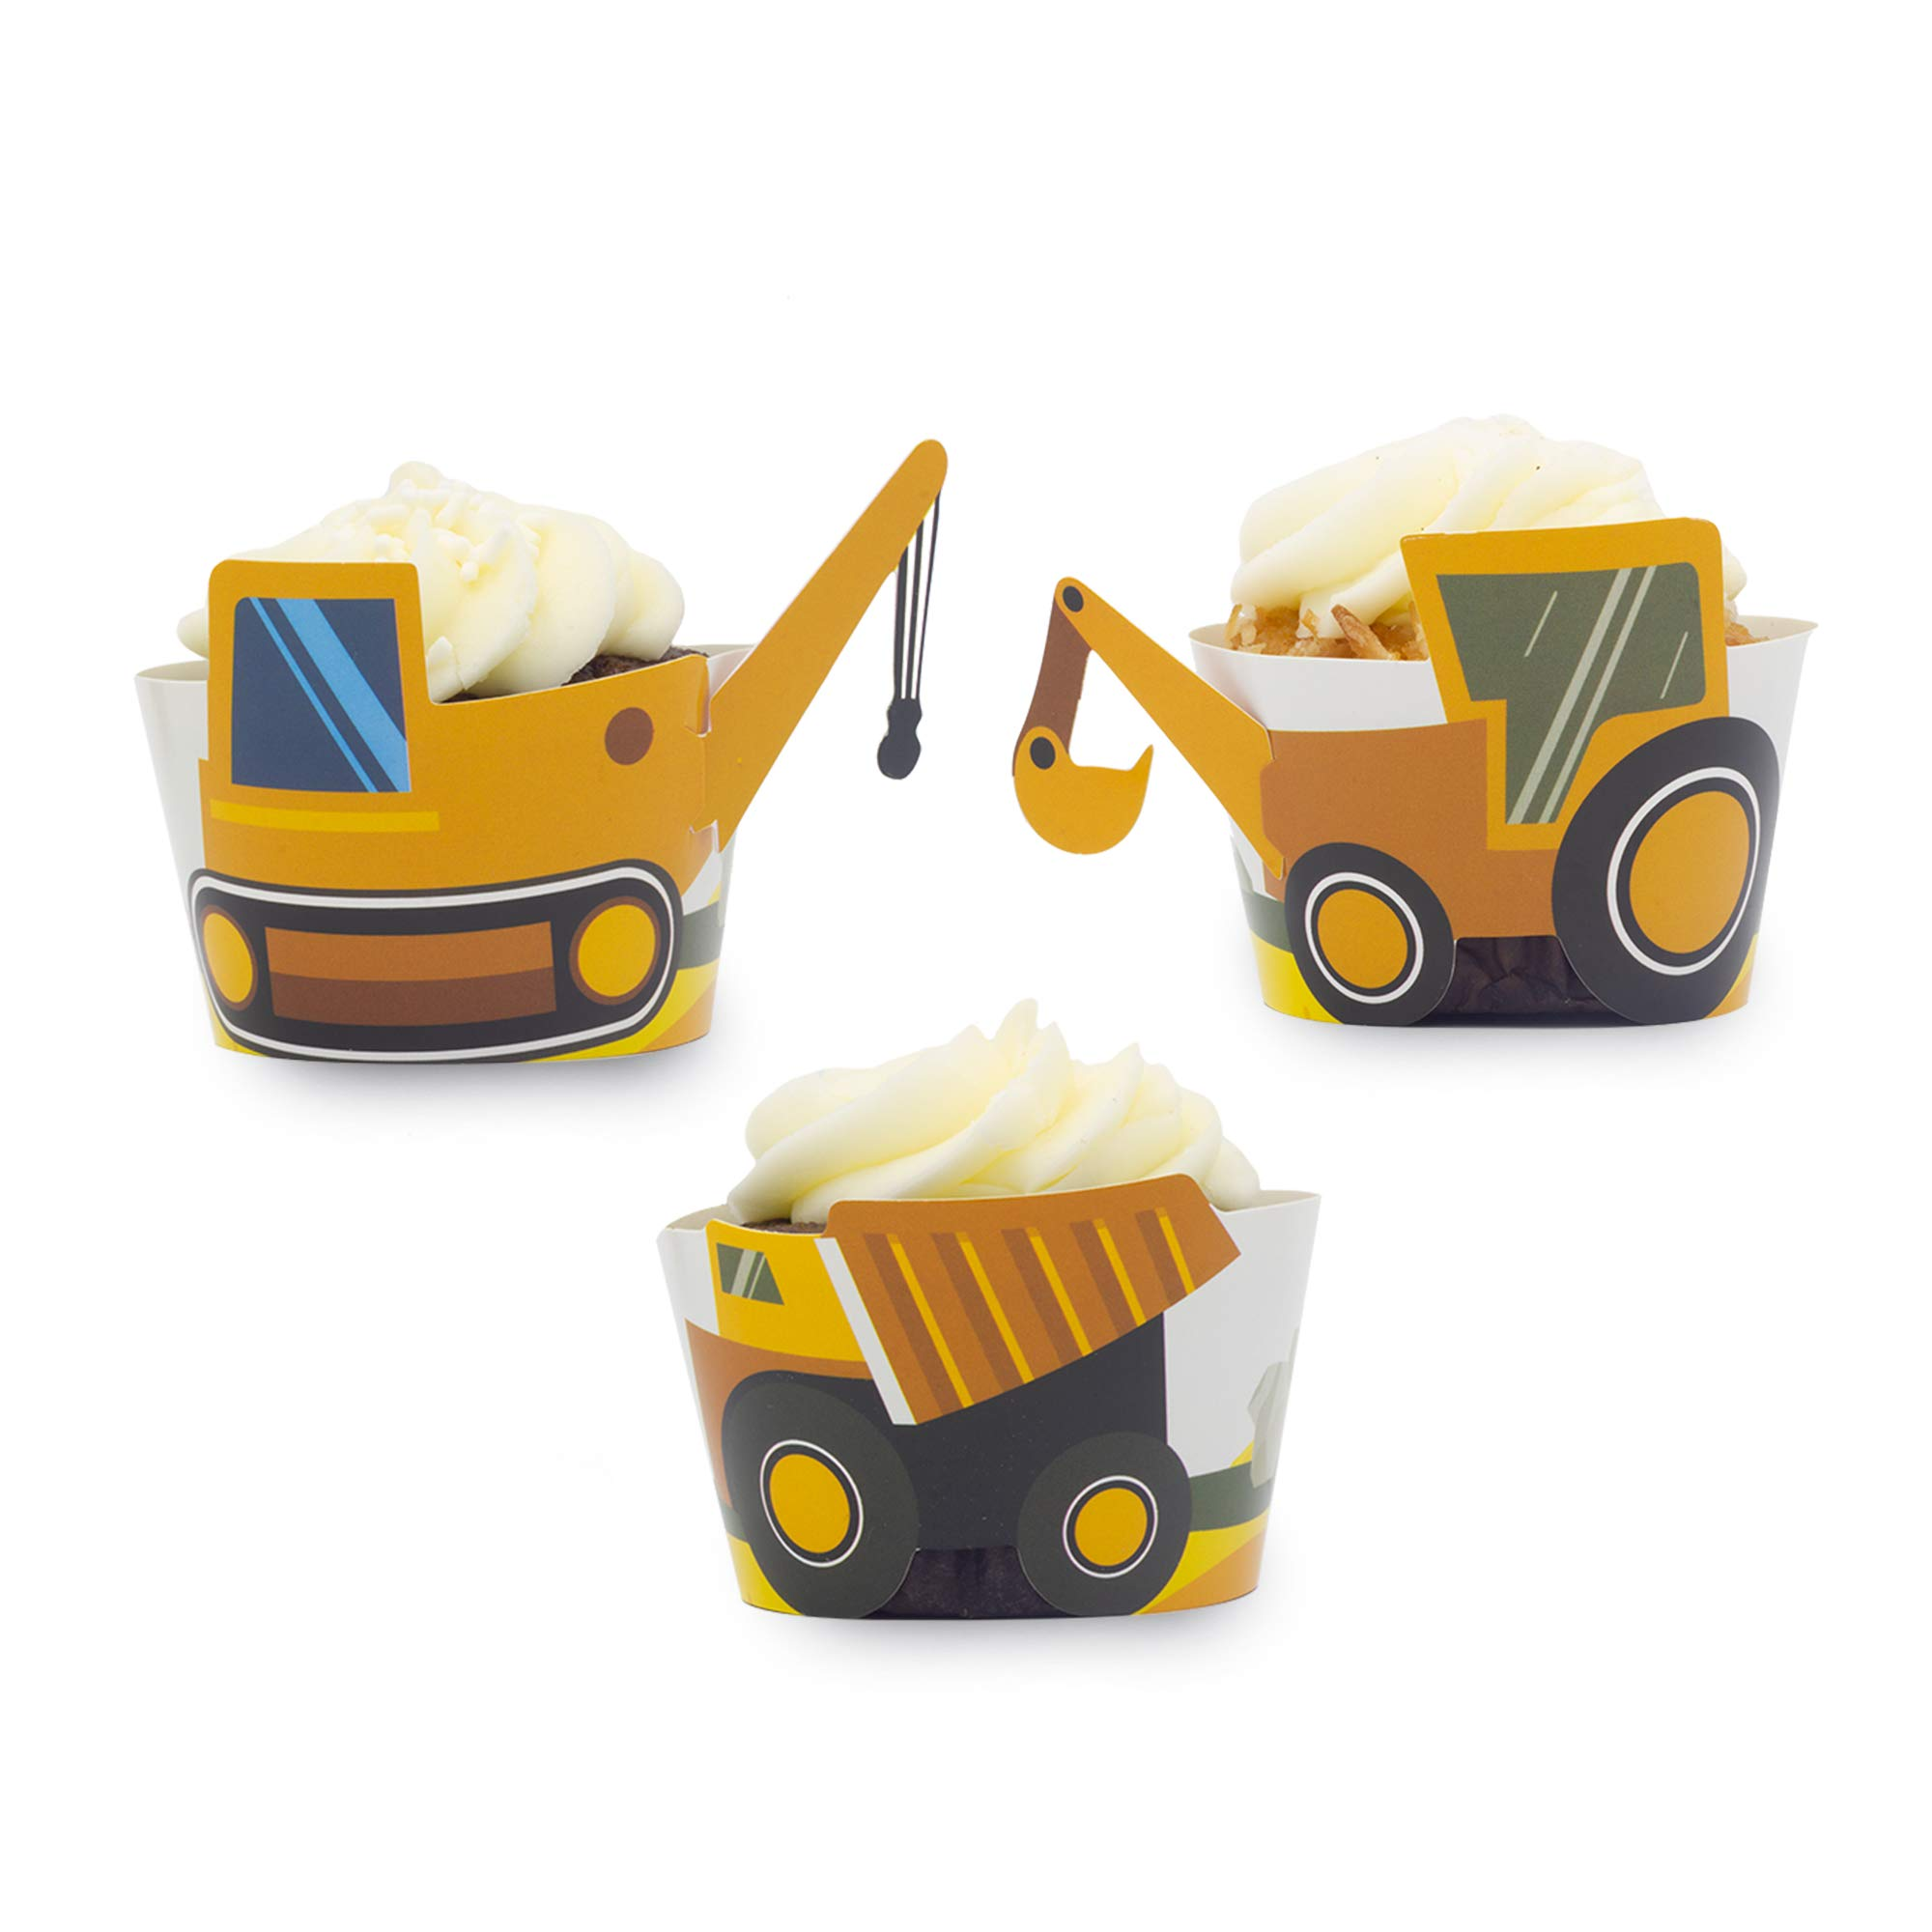 Construction Birthday Party Cupcake Wrappers- Set of 24 by Pop Fizz Designs